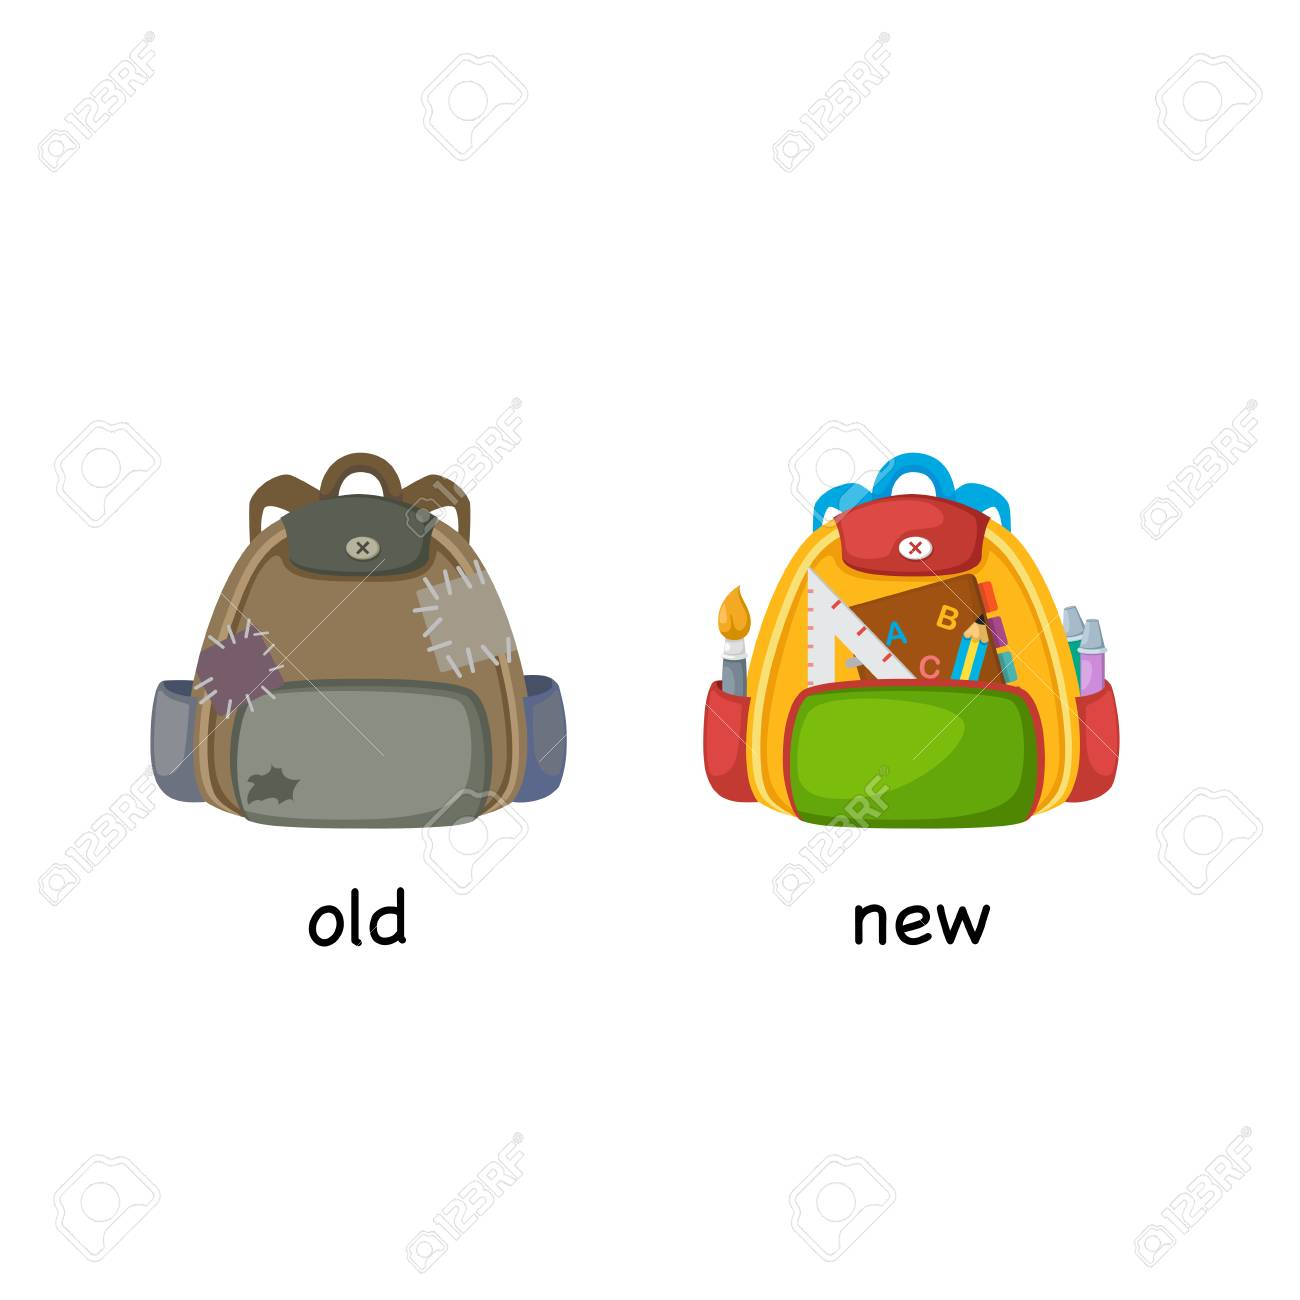 Old and new bag, opposite concept illustration.